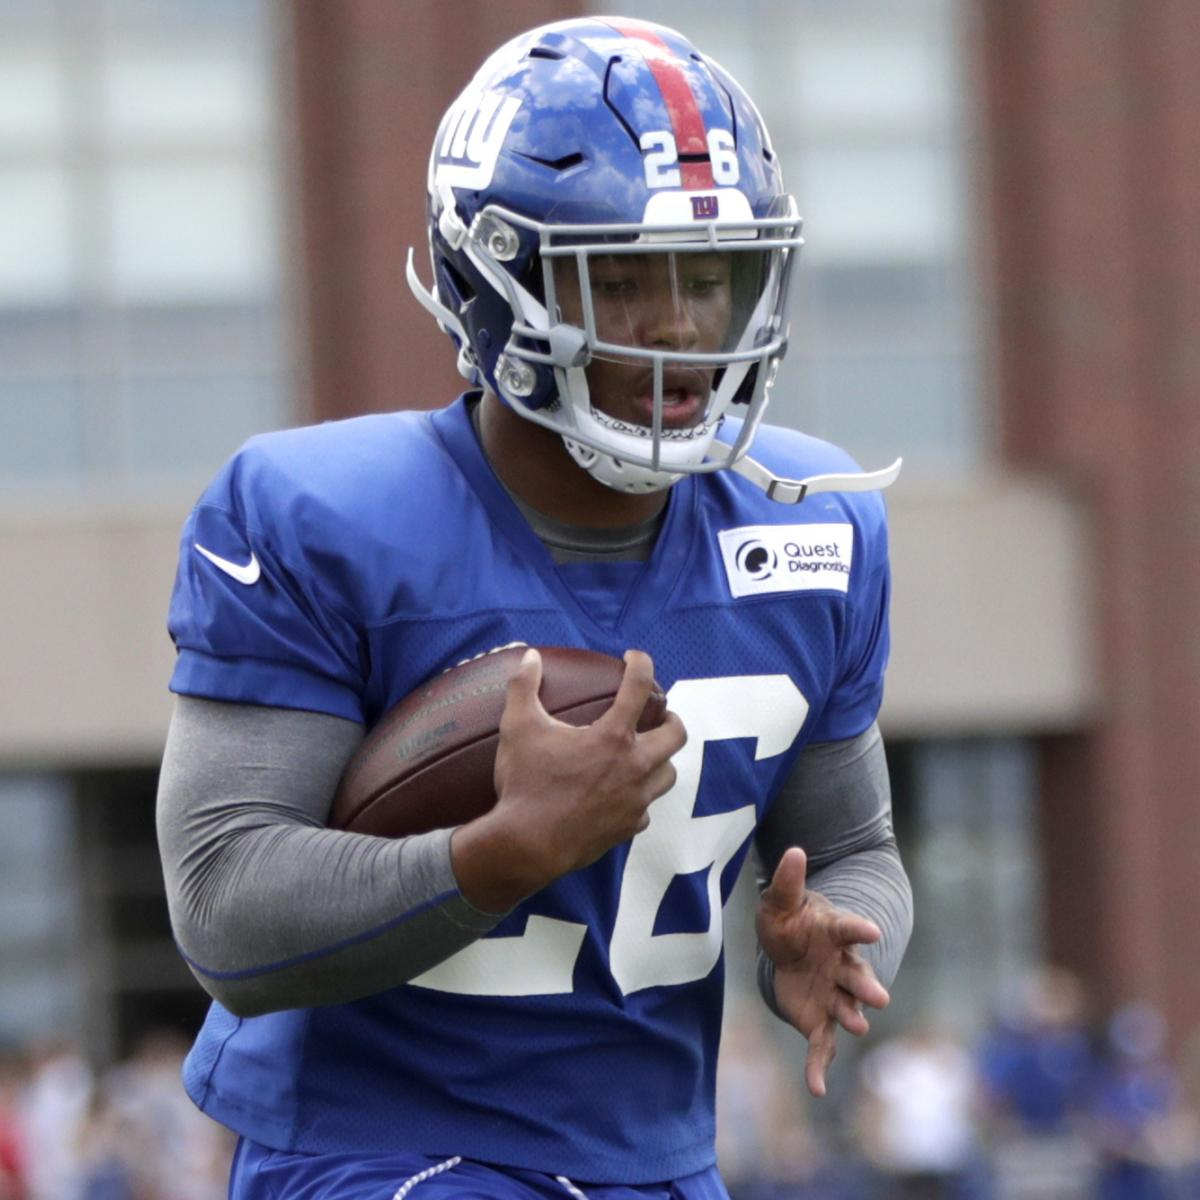 Fantasy Football 2018: Rankings For Rookies, Sleepers And